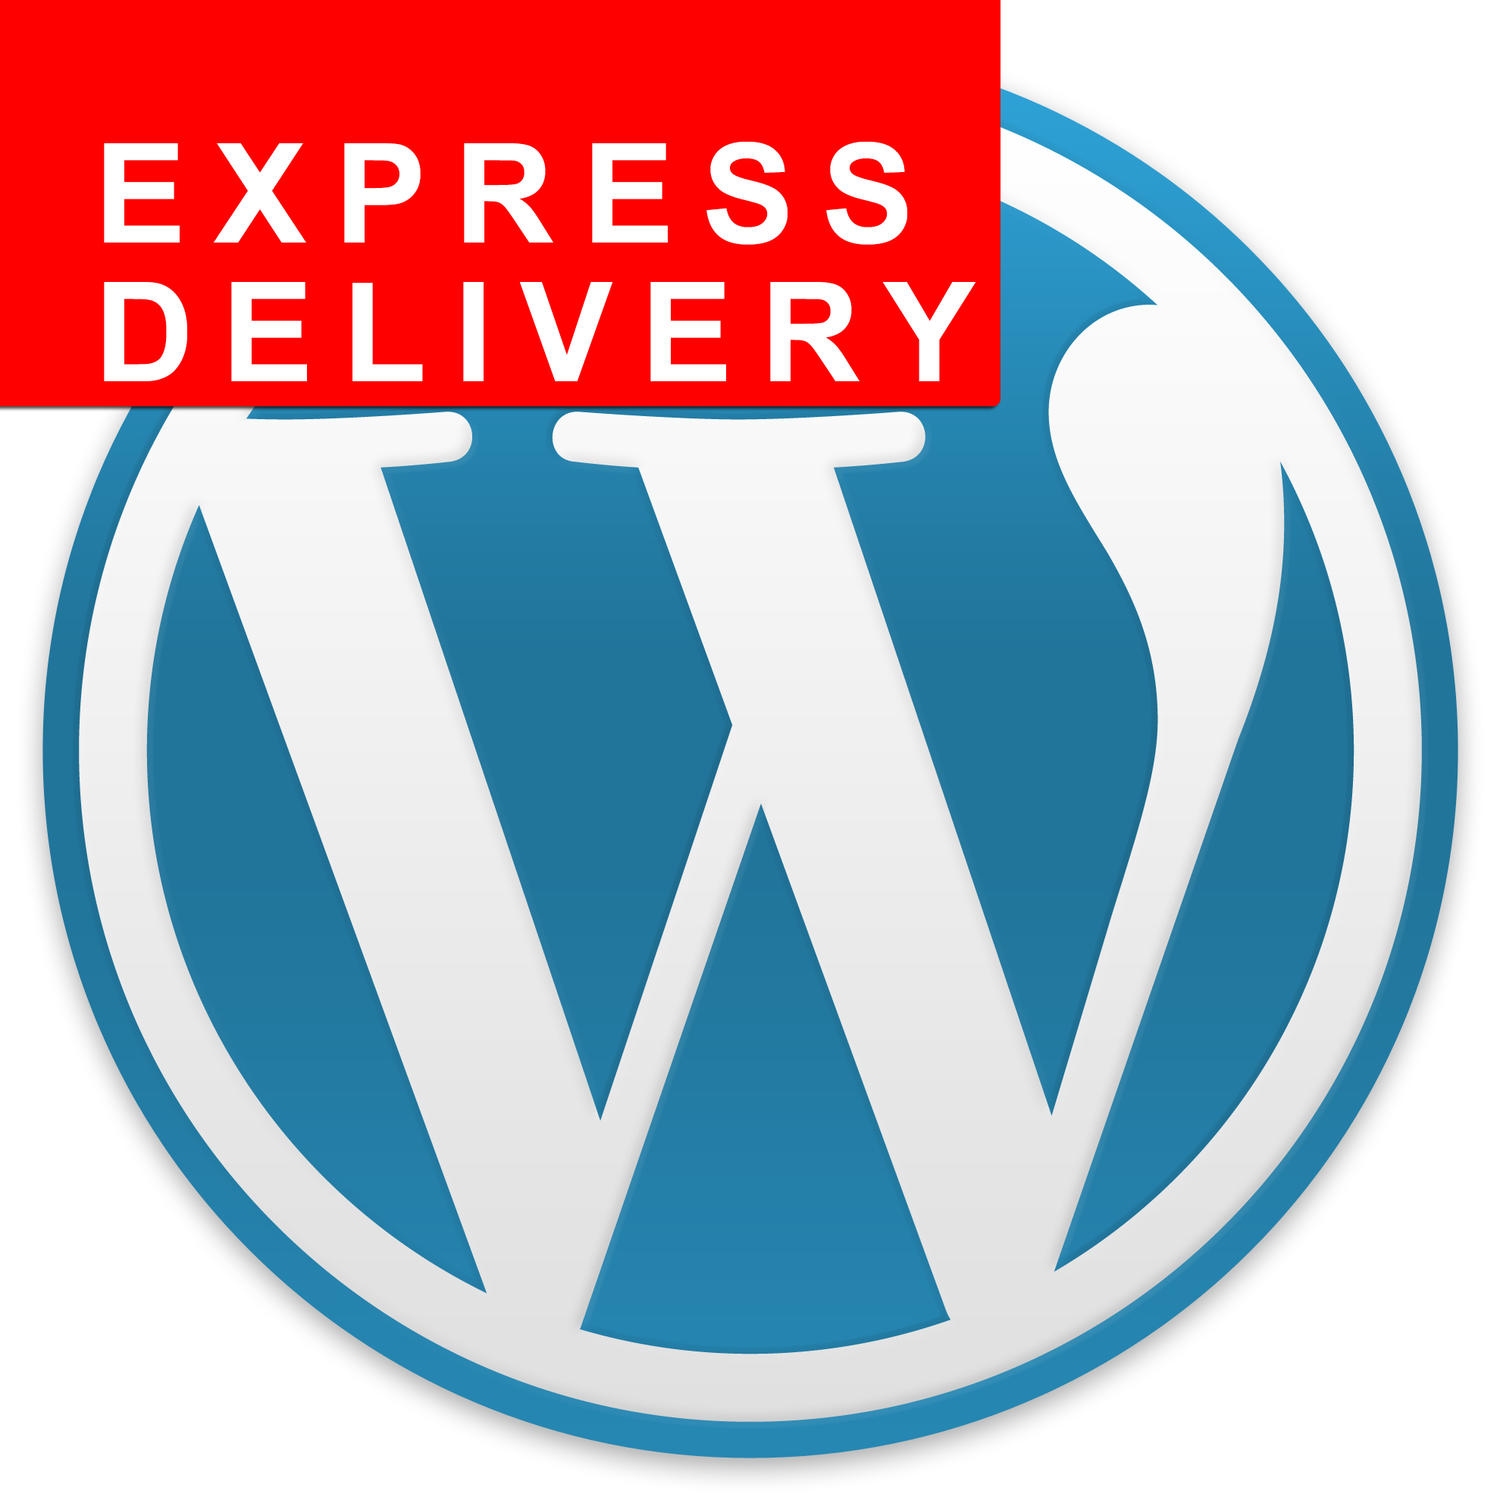 Fix Small WordPress Issues by nyasro - 31732